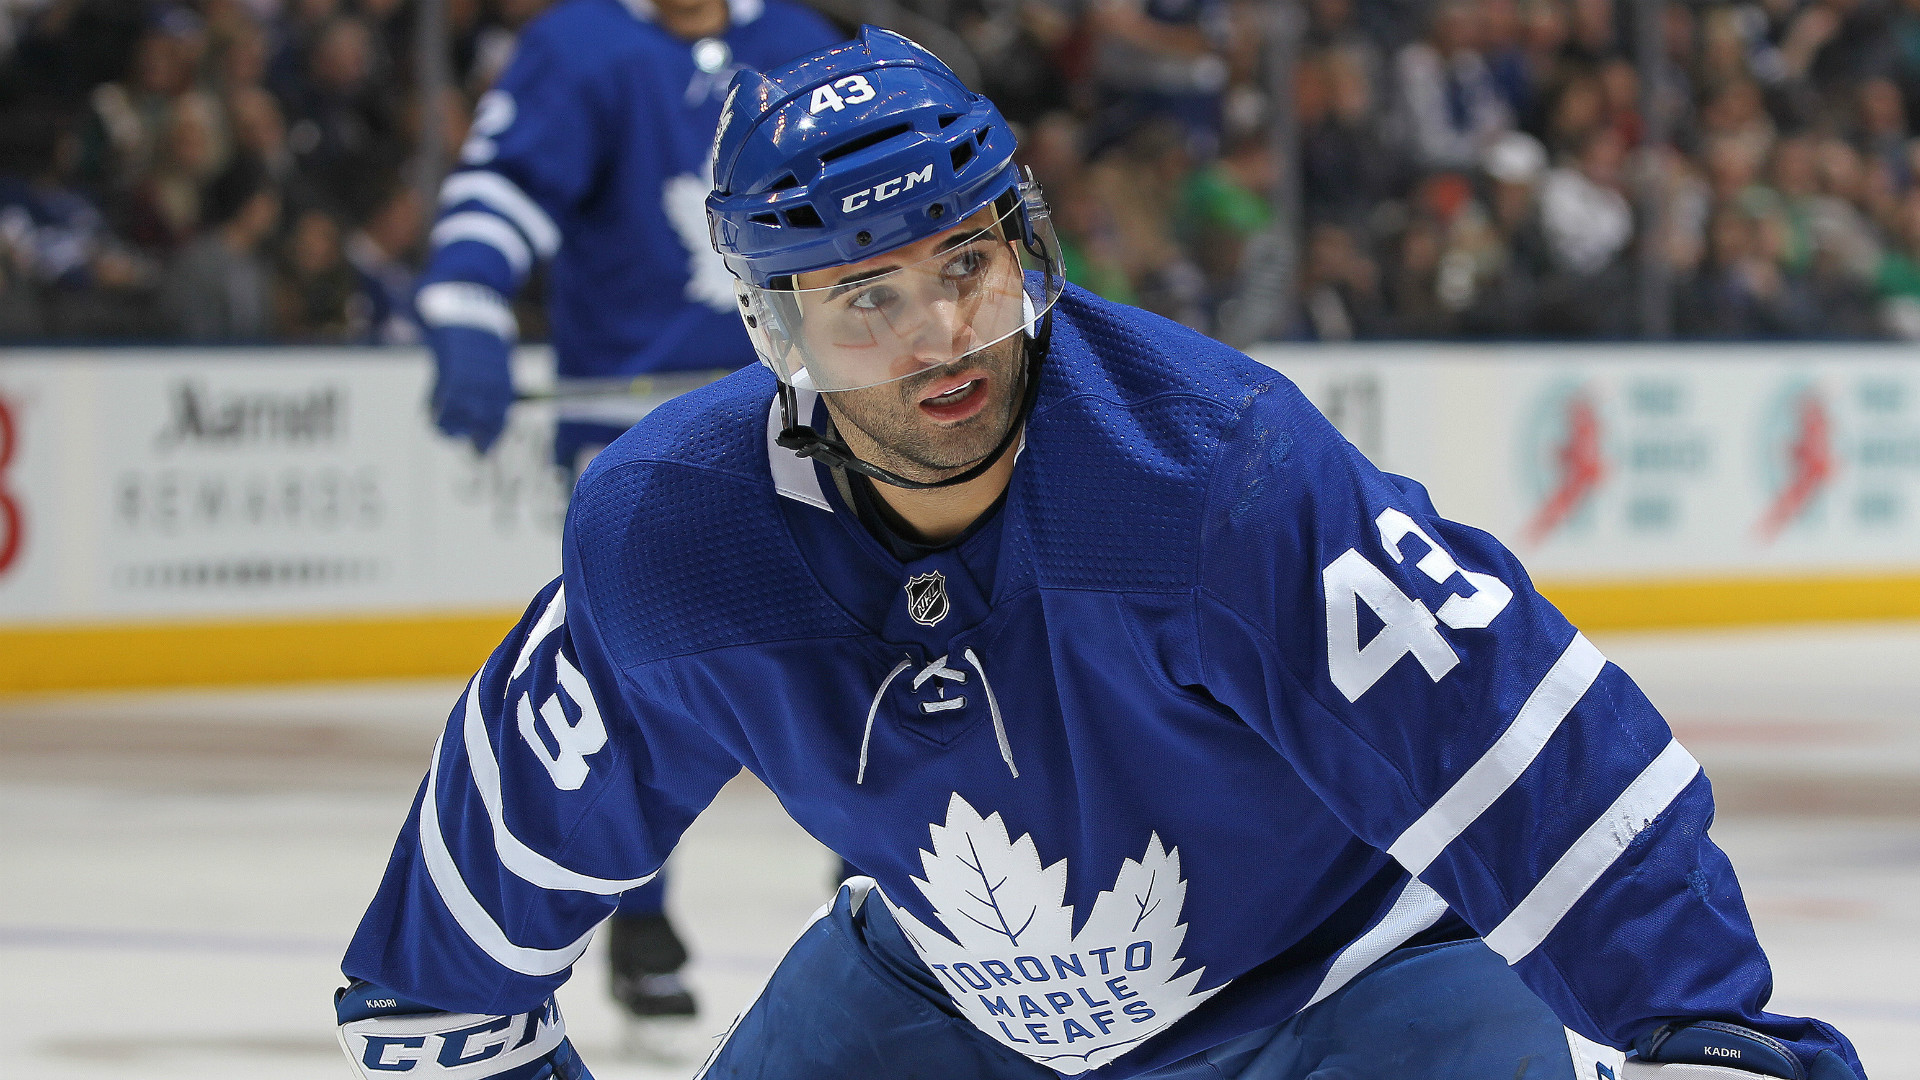 Maple Leafs' Nazem Kadri's risky hit has no place in hockey